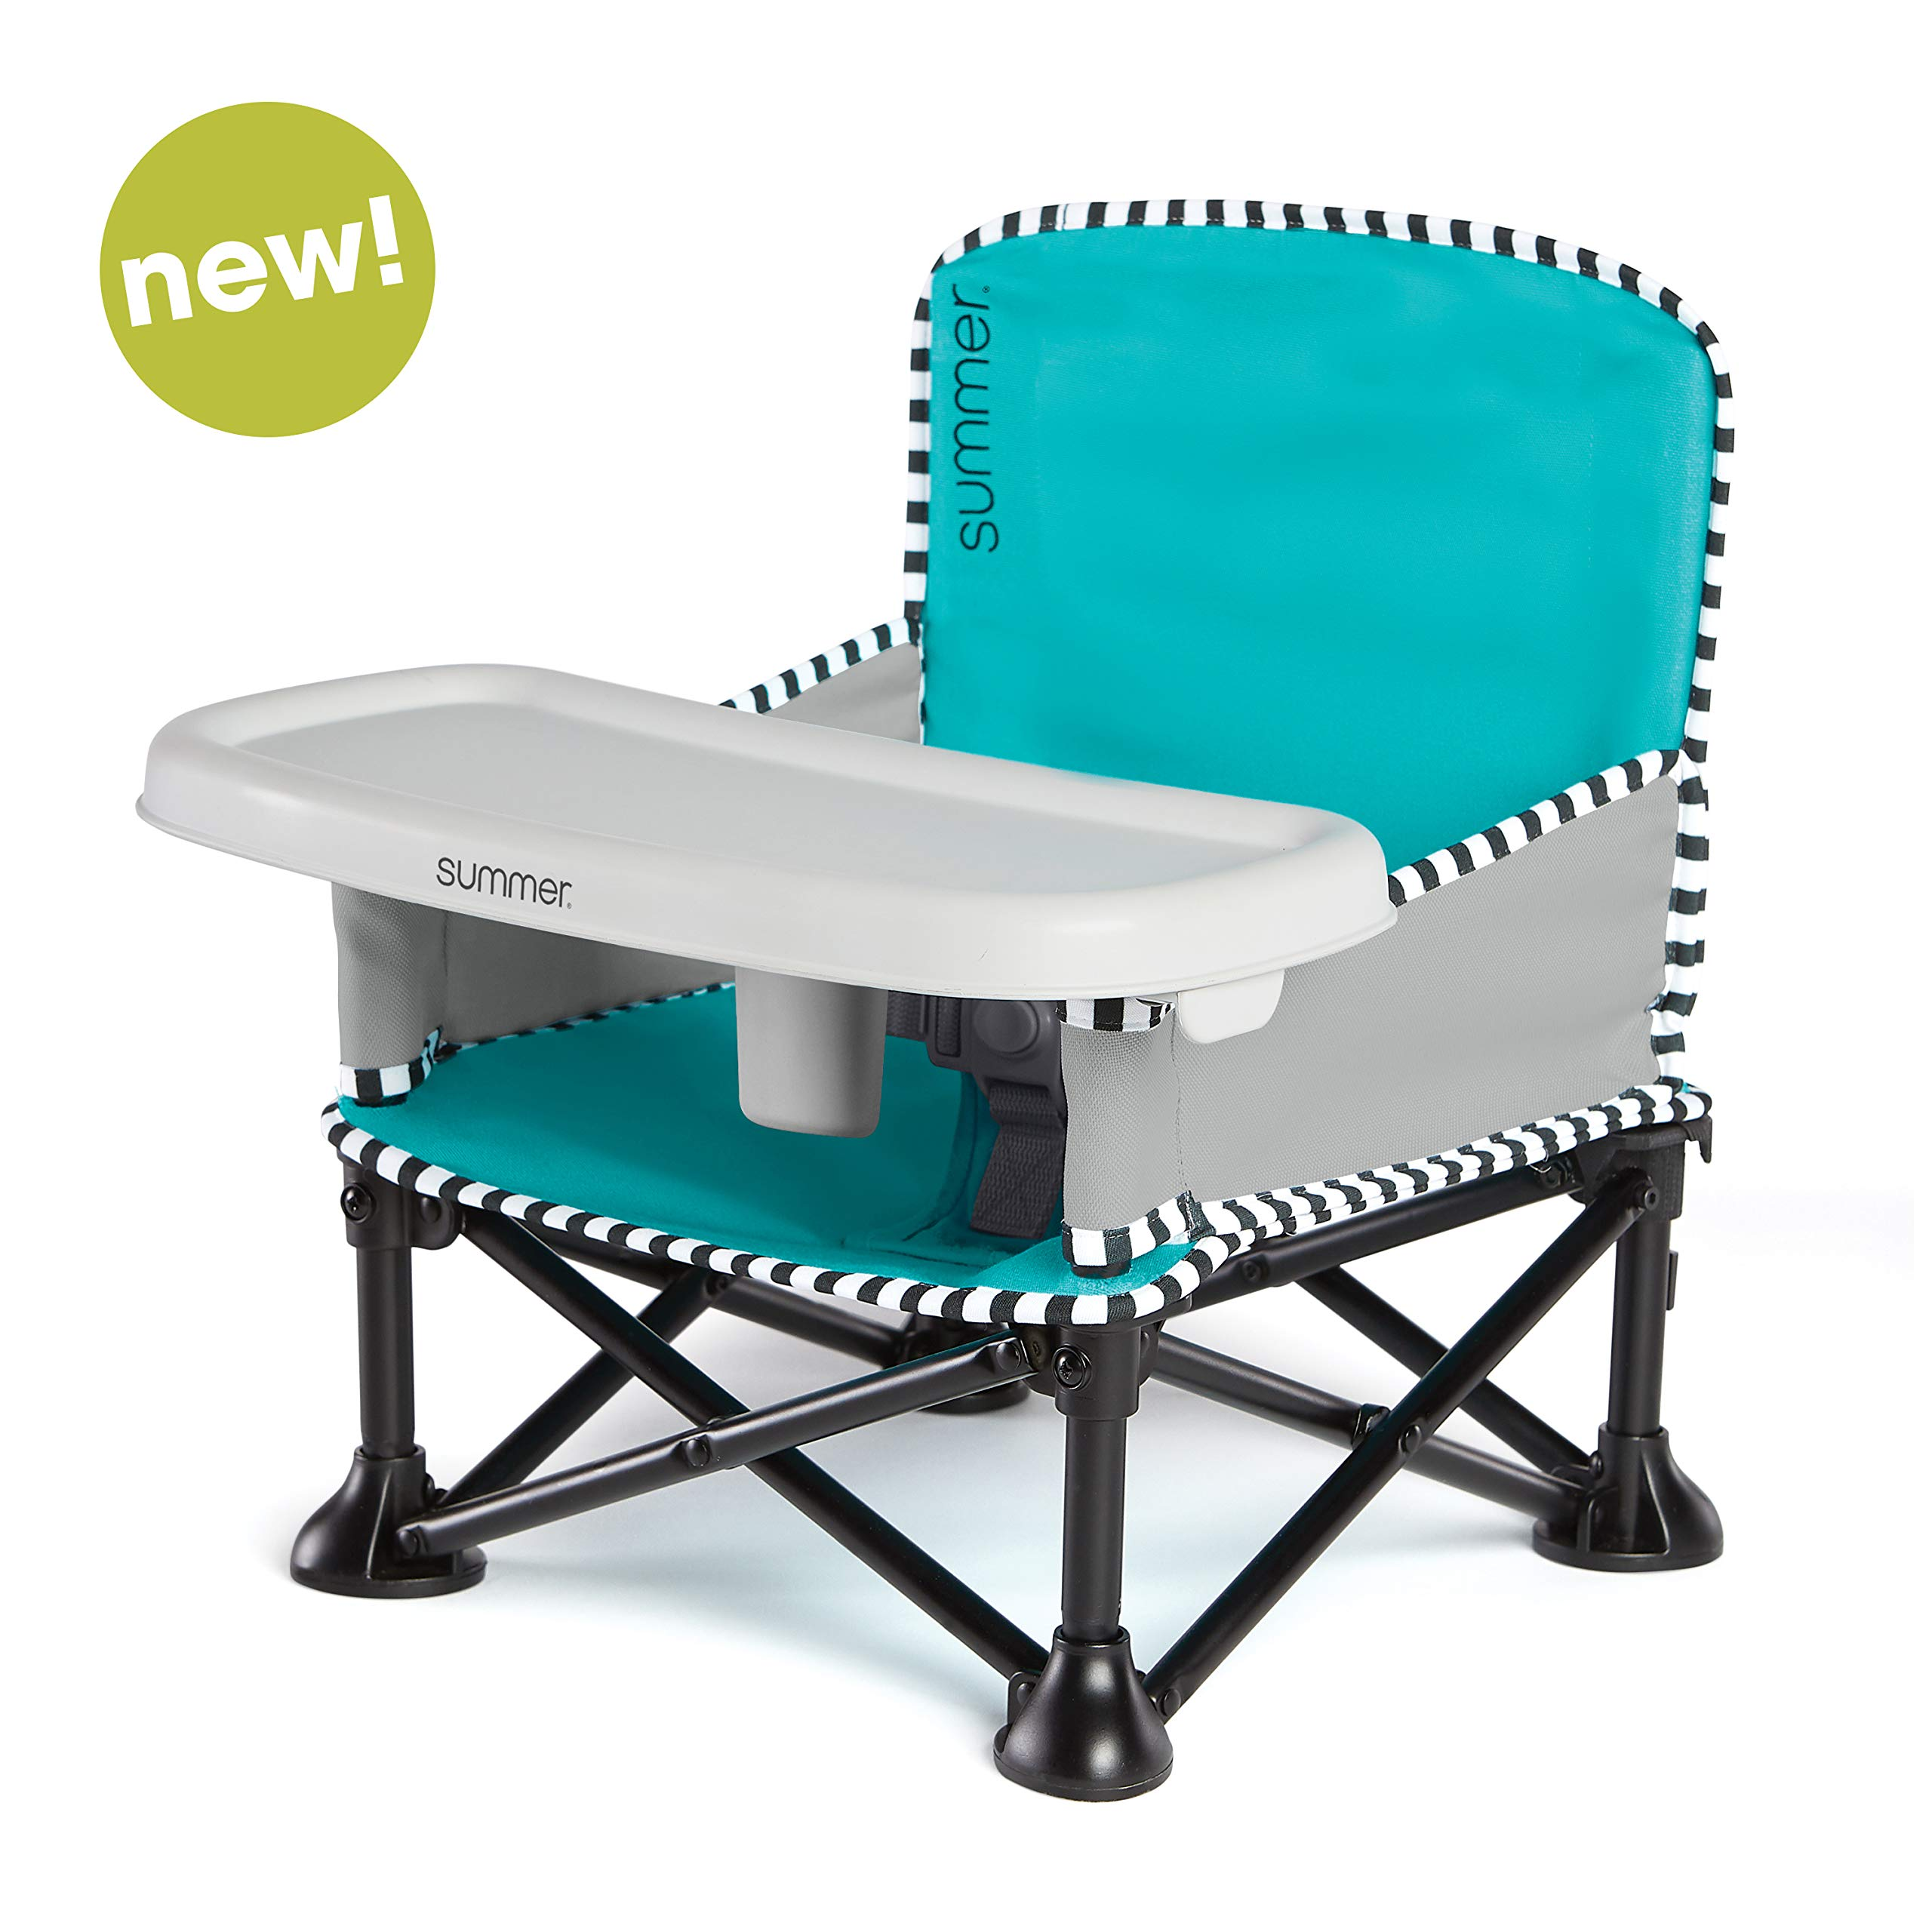 Summer Pop 'n Sit SE Booster Chair, Sweet Life Edition, Aqua Sugar Color – Booster Seat for Indoor/Outdoor Use – Fast…